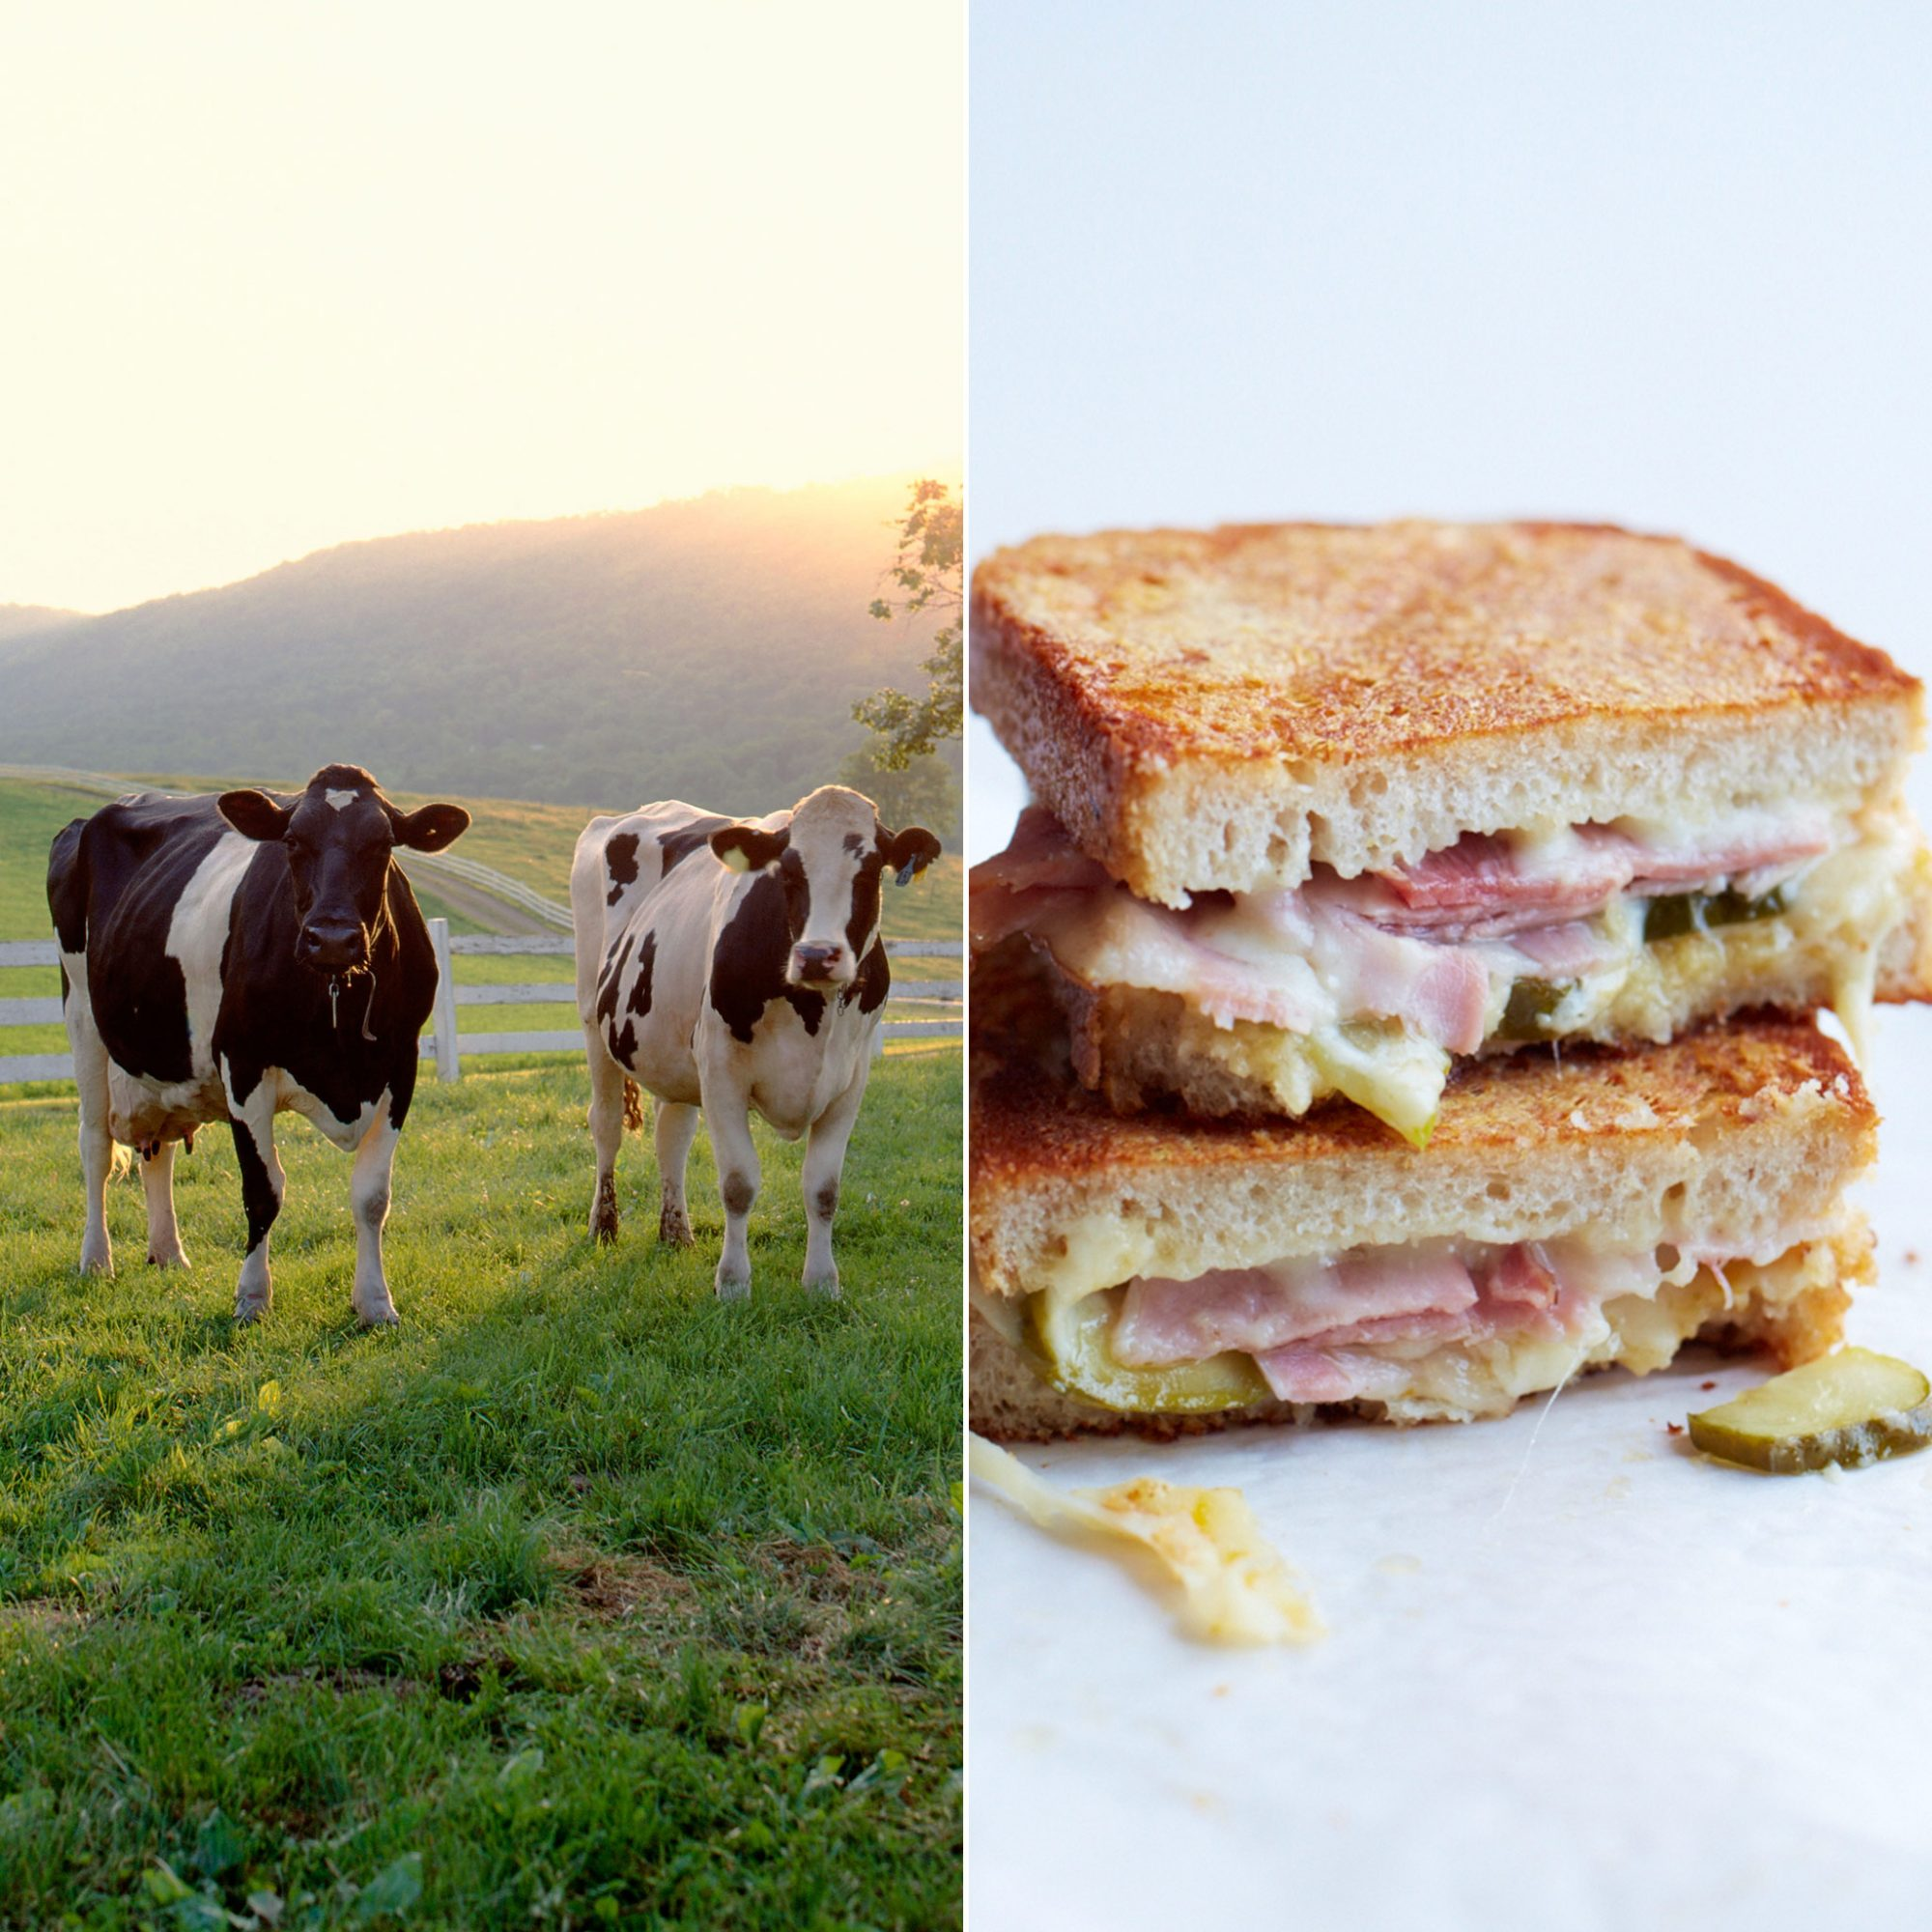 This Ham-and-Cheese Sandwich is the Ultimate Farm-to-Table Experience